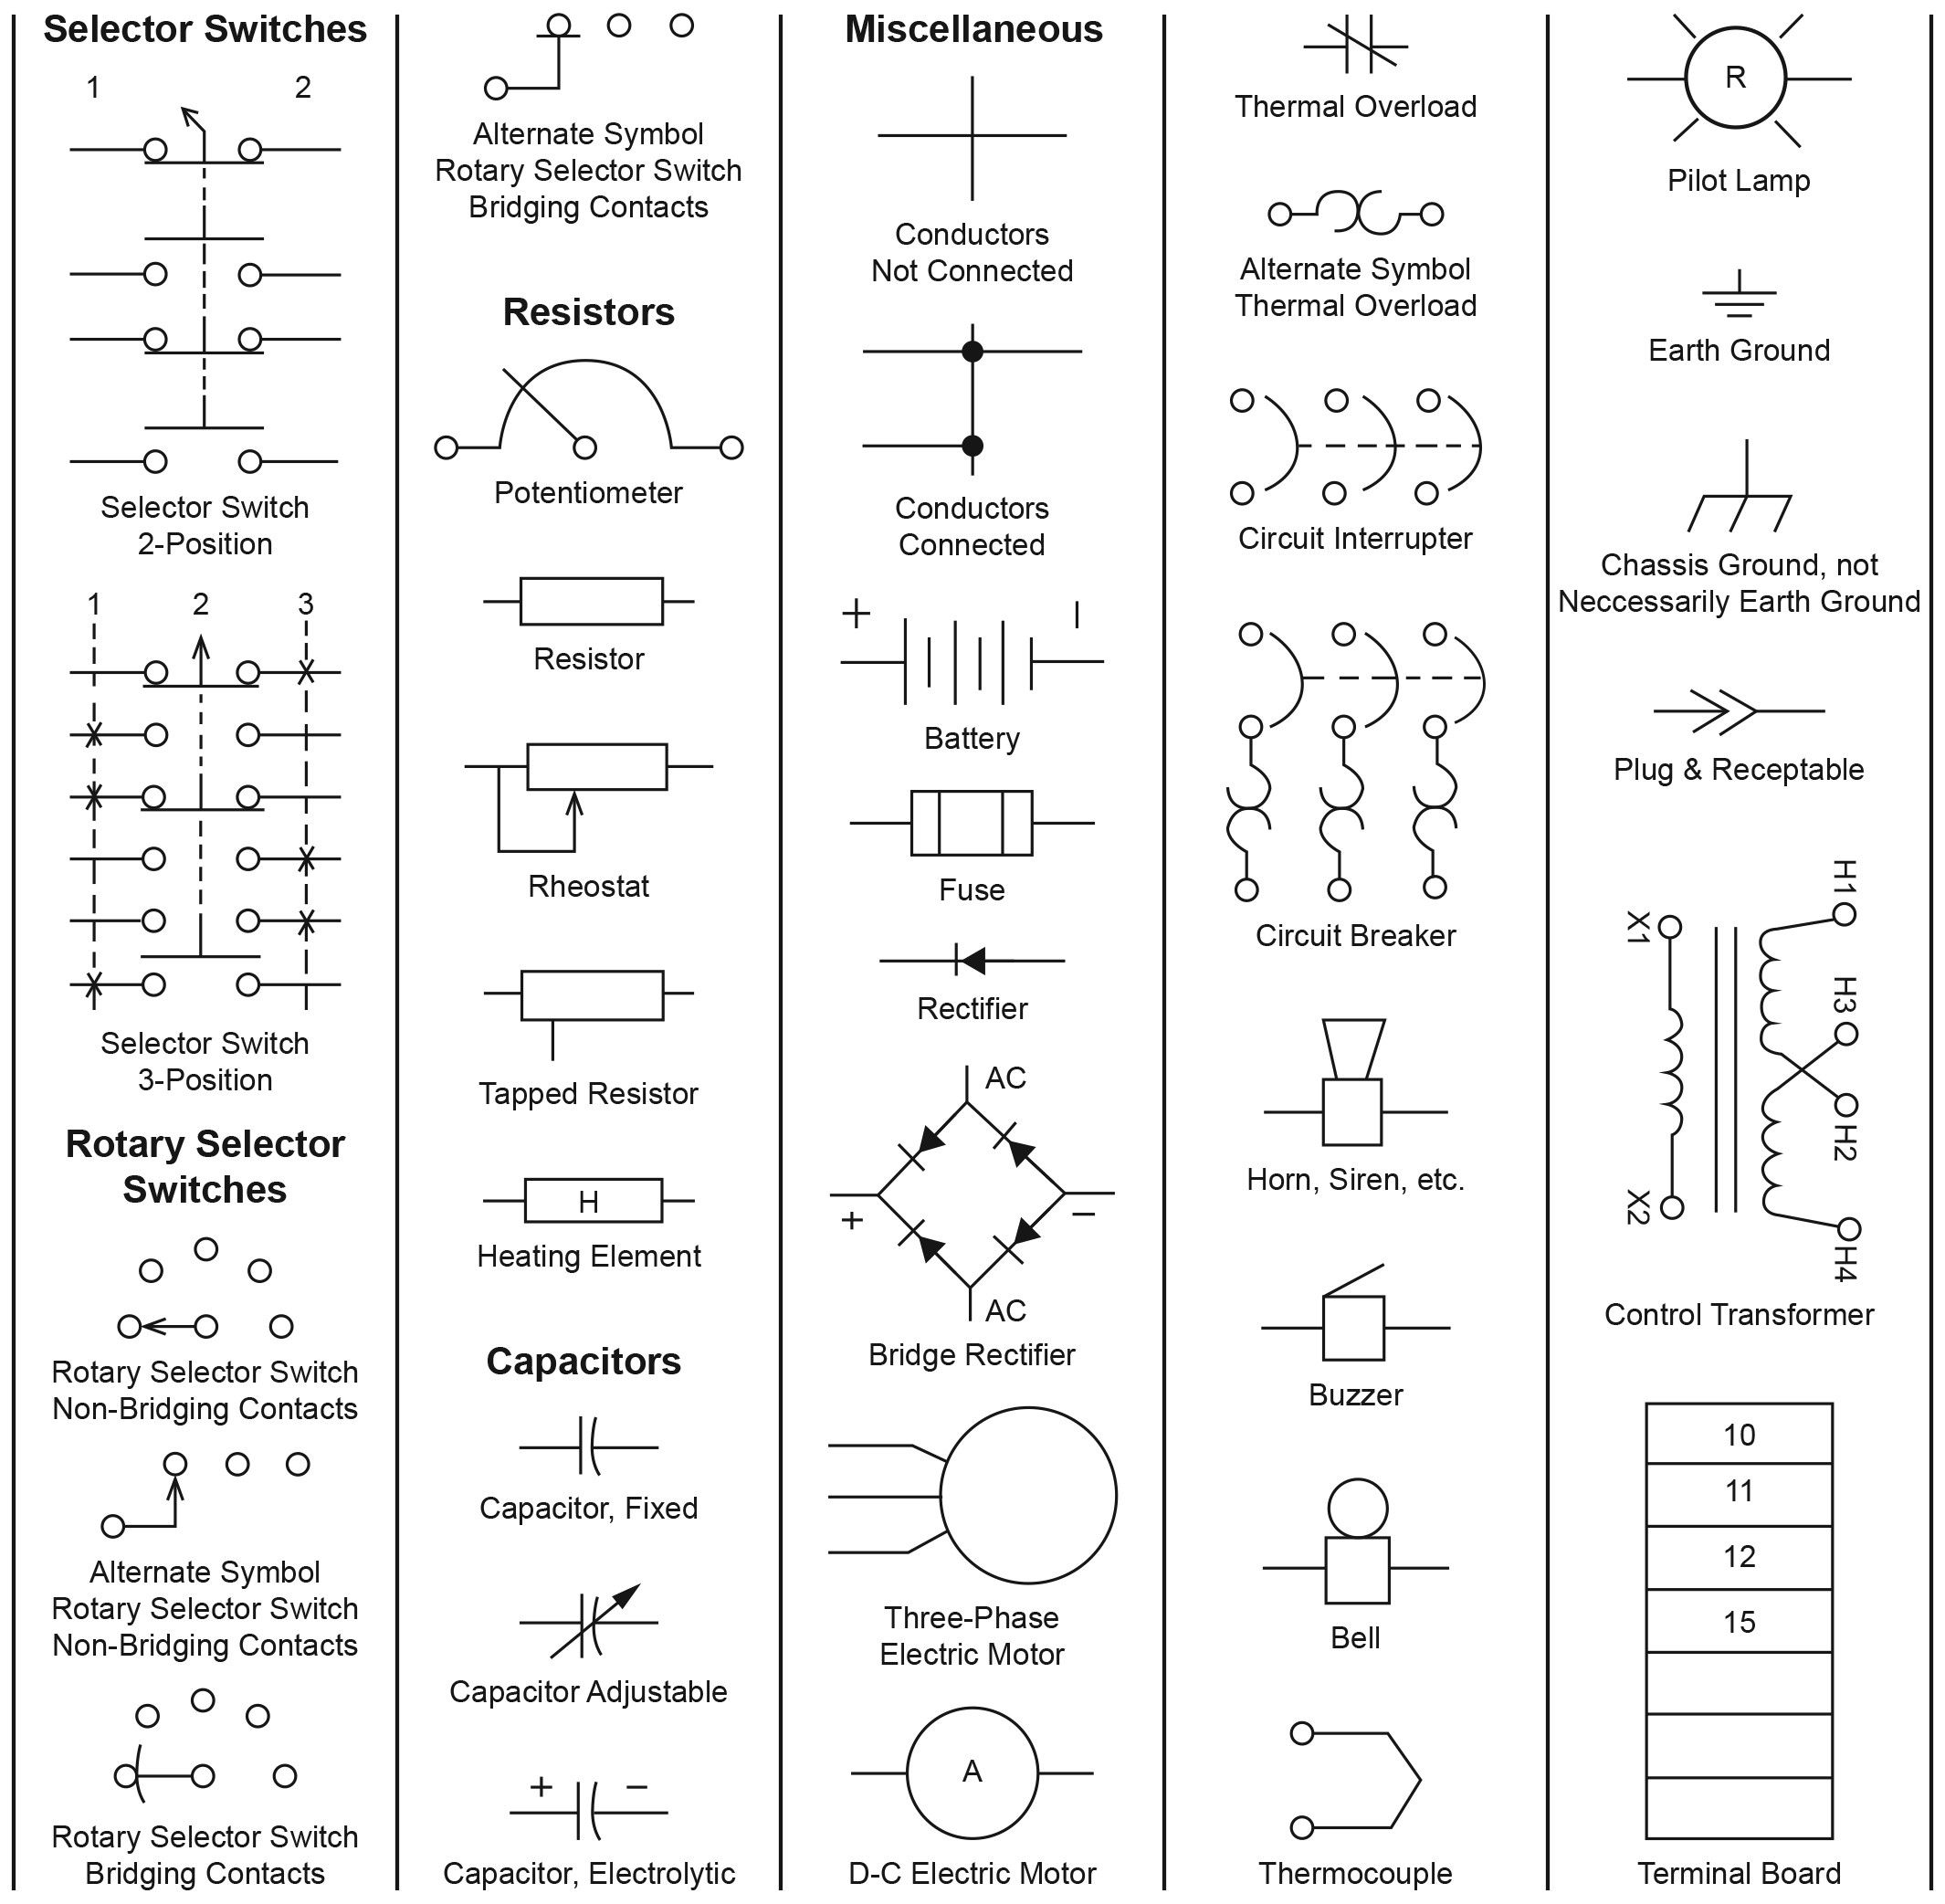 new electronic diagram symbols #diagram #wiringdiagram #diagramming  #diagramm #visuals #visualisation #graphical | single line diagram, line  diagram, diagram  pinterest